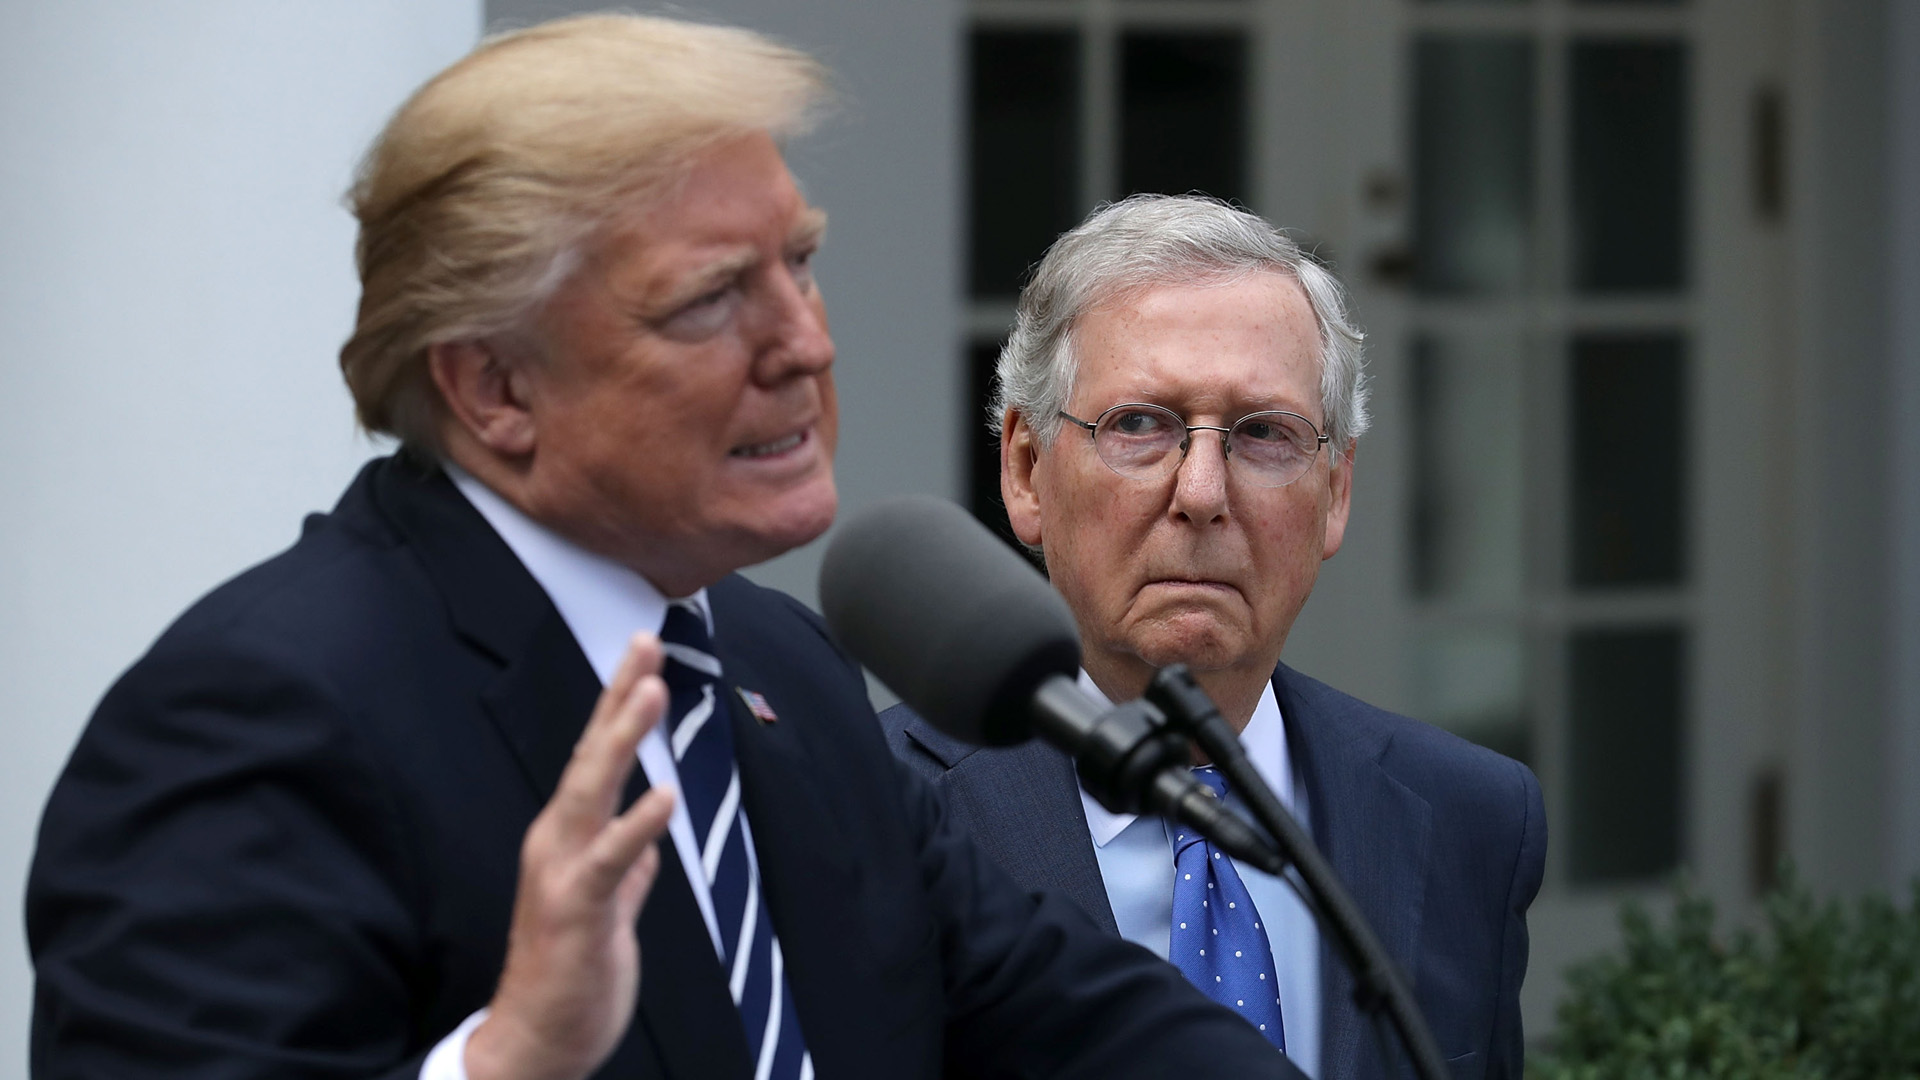 Donald Trump and Senate Majority Leader Mitch McConnell (R-KY) talk to reporters in the Rose Garden following a lunch meeting at the White House October 16, 2017 in Washington, DC. (Credit: Chip Somodevilla/Getty Images)